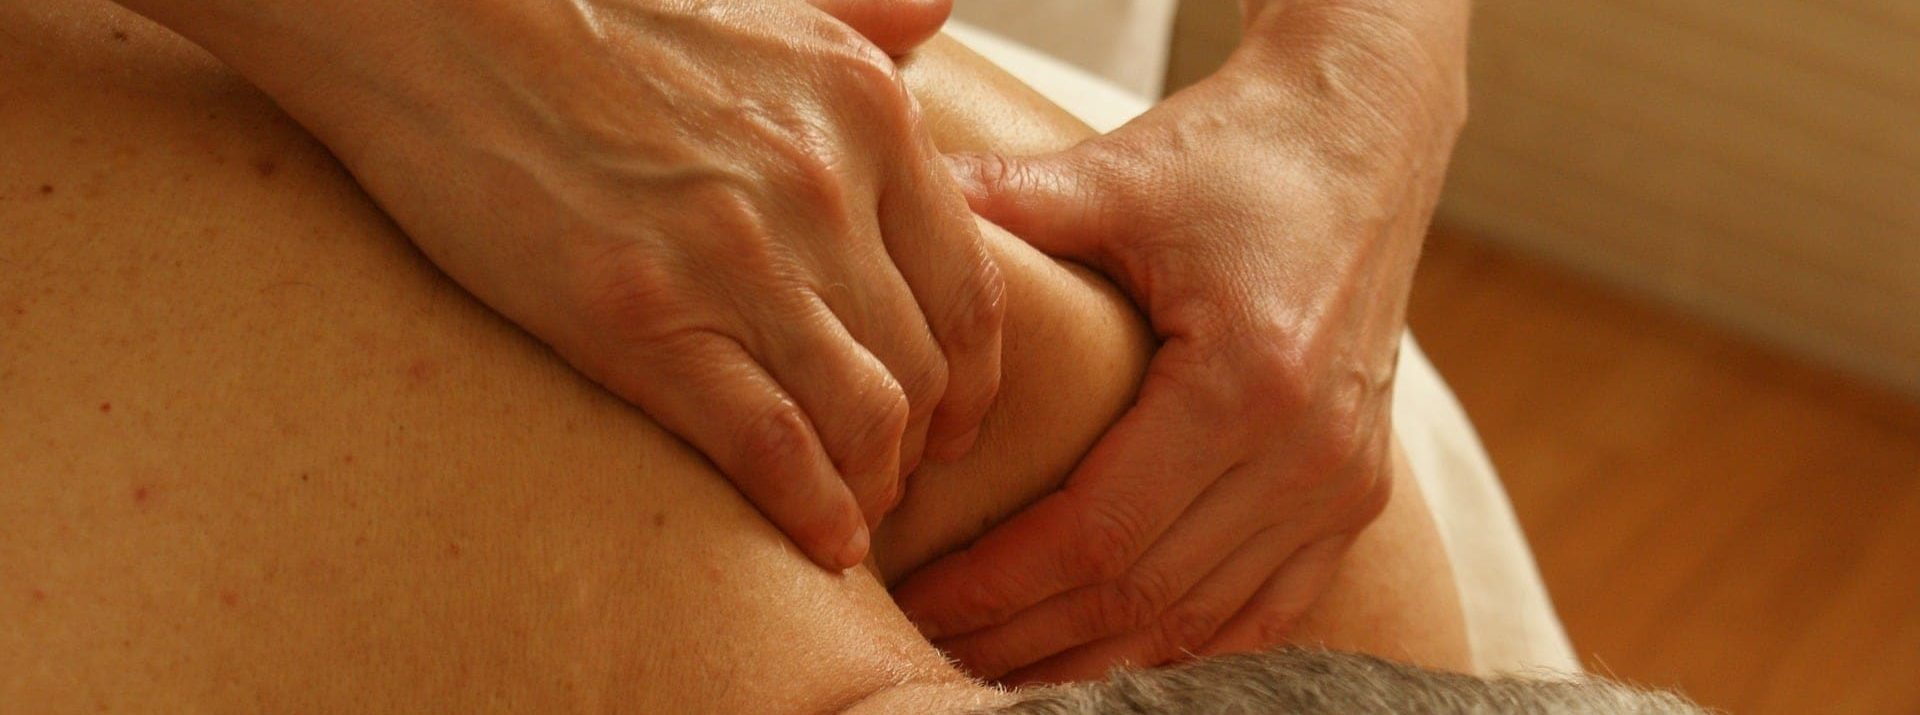 Our physiotherapists have been practicing for over 5 years